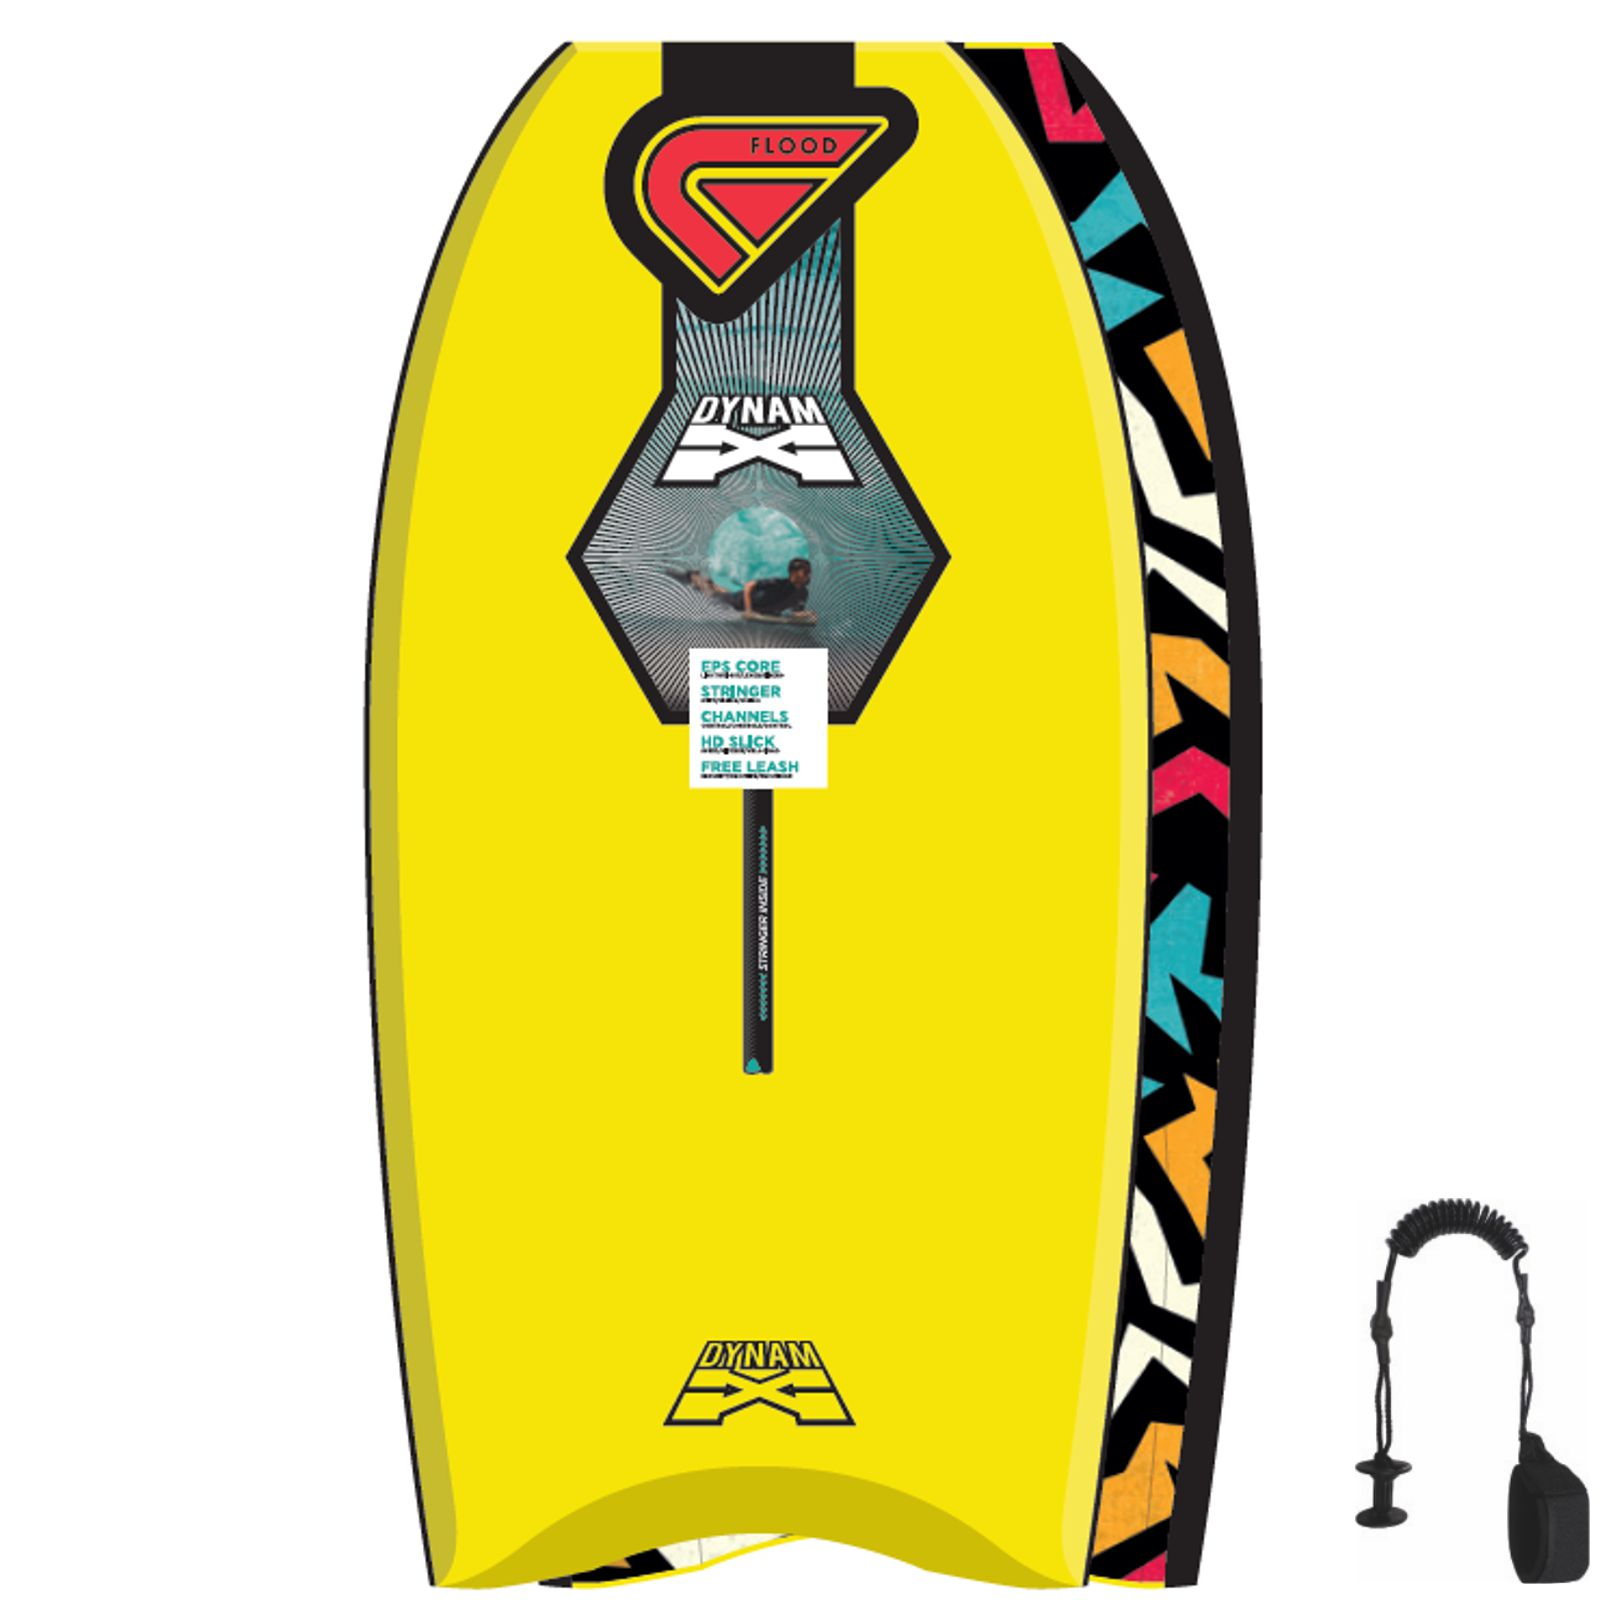 FLOOD Bodyboard Dynamx Stringer 44 Gelb Tribal